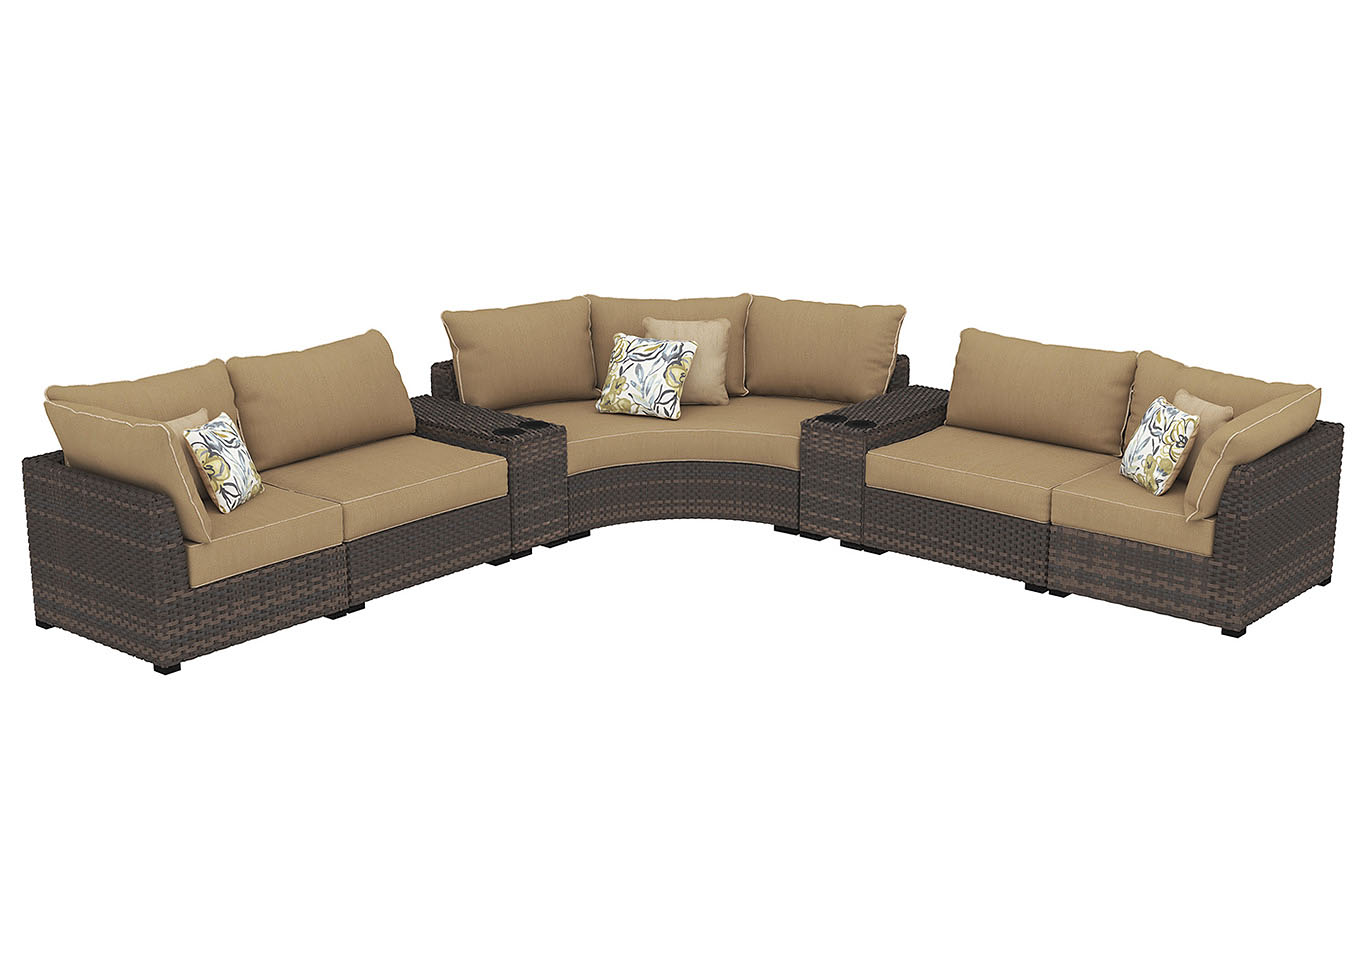 Spring Ridge Beige/Brown Curved Sectional,Outdoor By Ashley